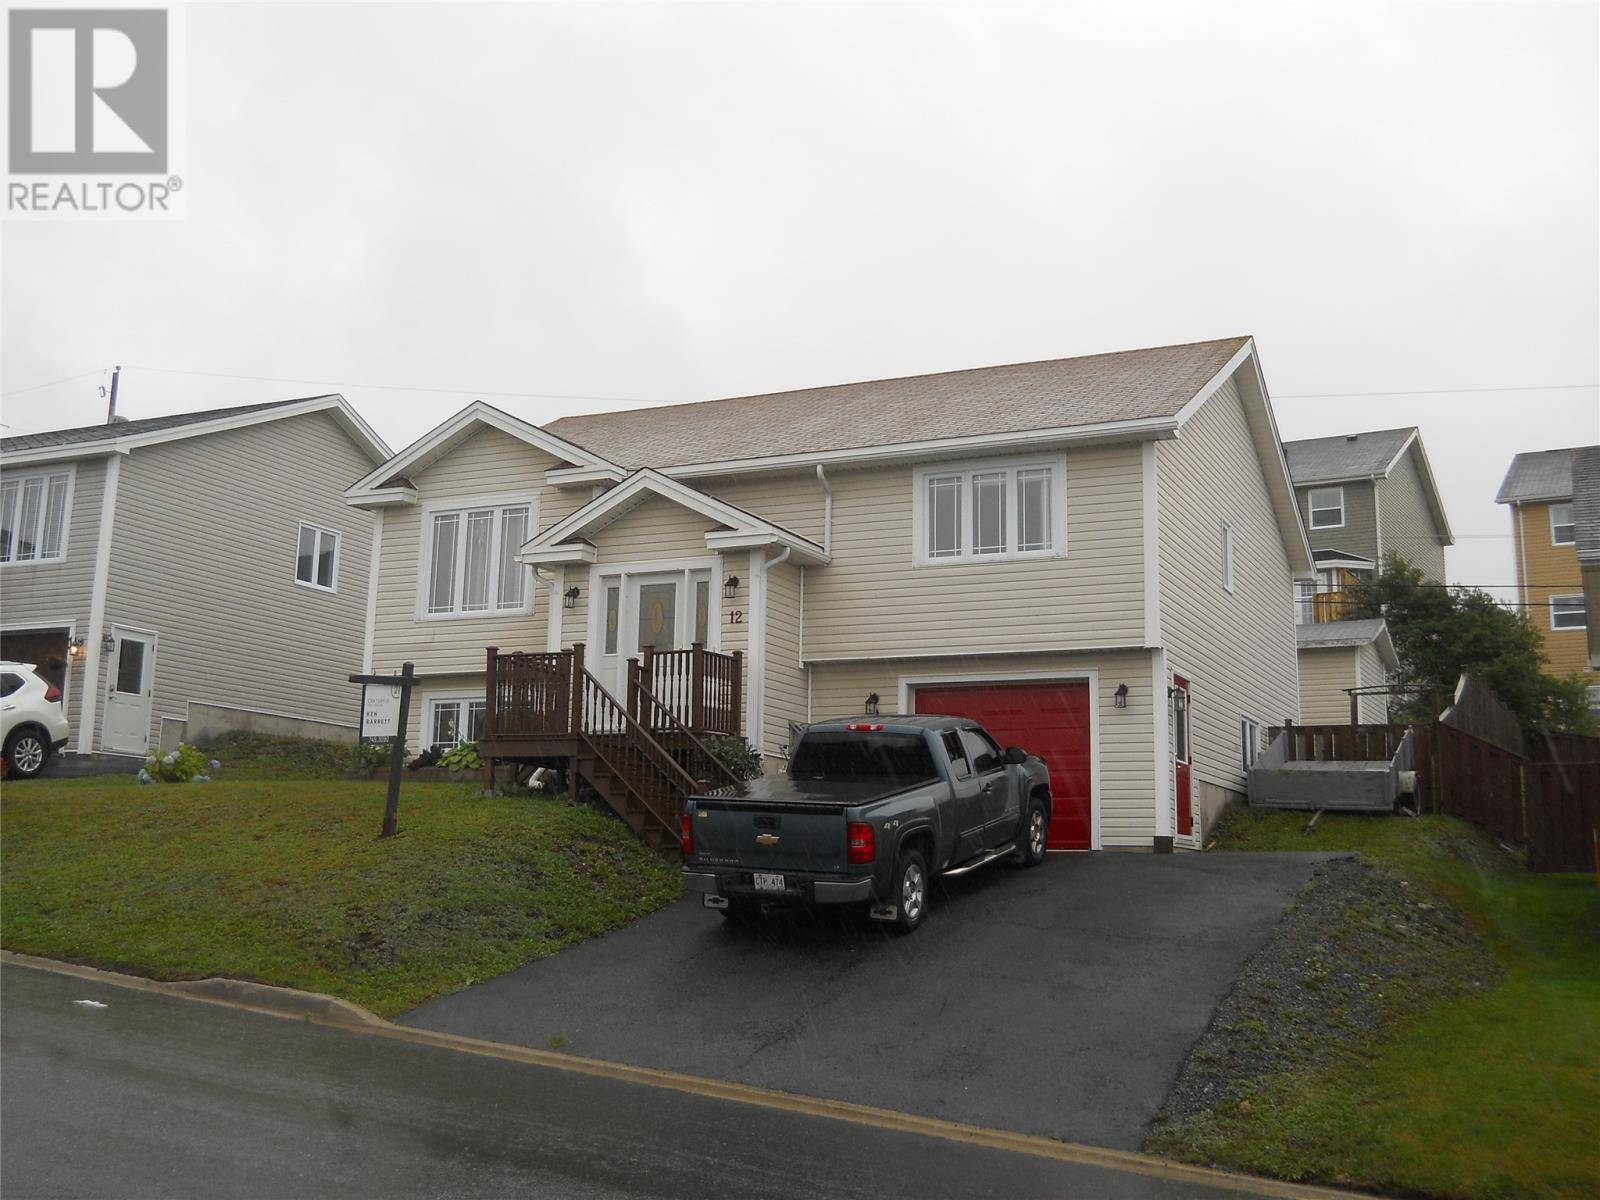 House for sale at 12 Goldrock Run Conception Bay South Newfoundland - MLS: 1183212